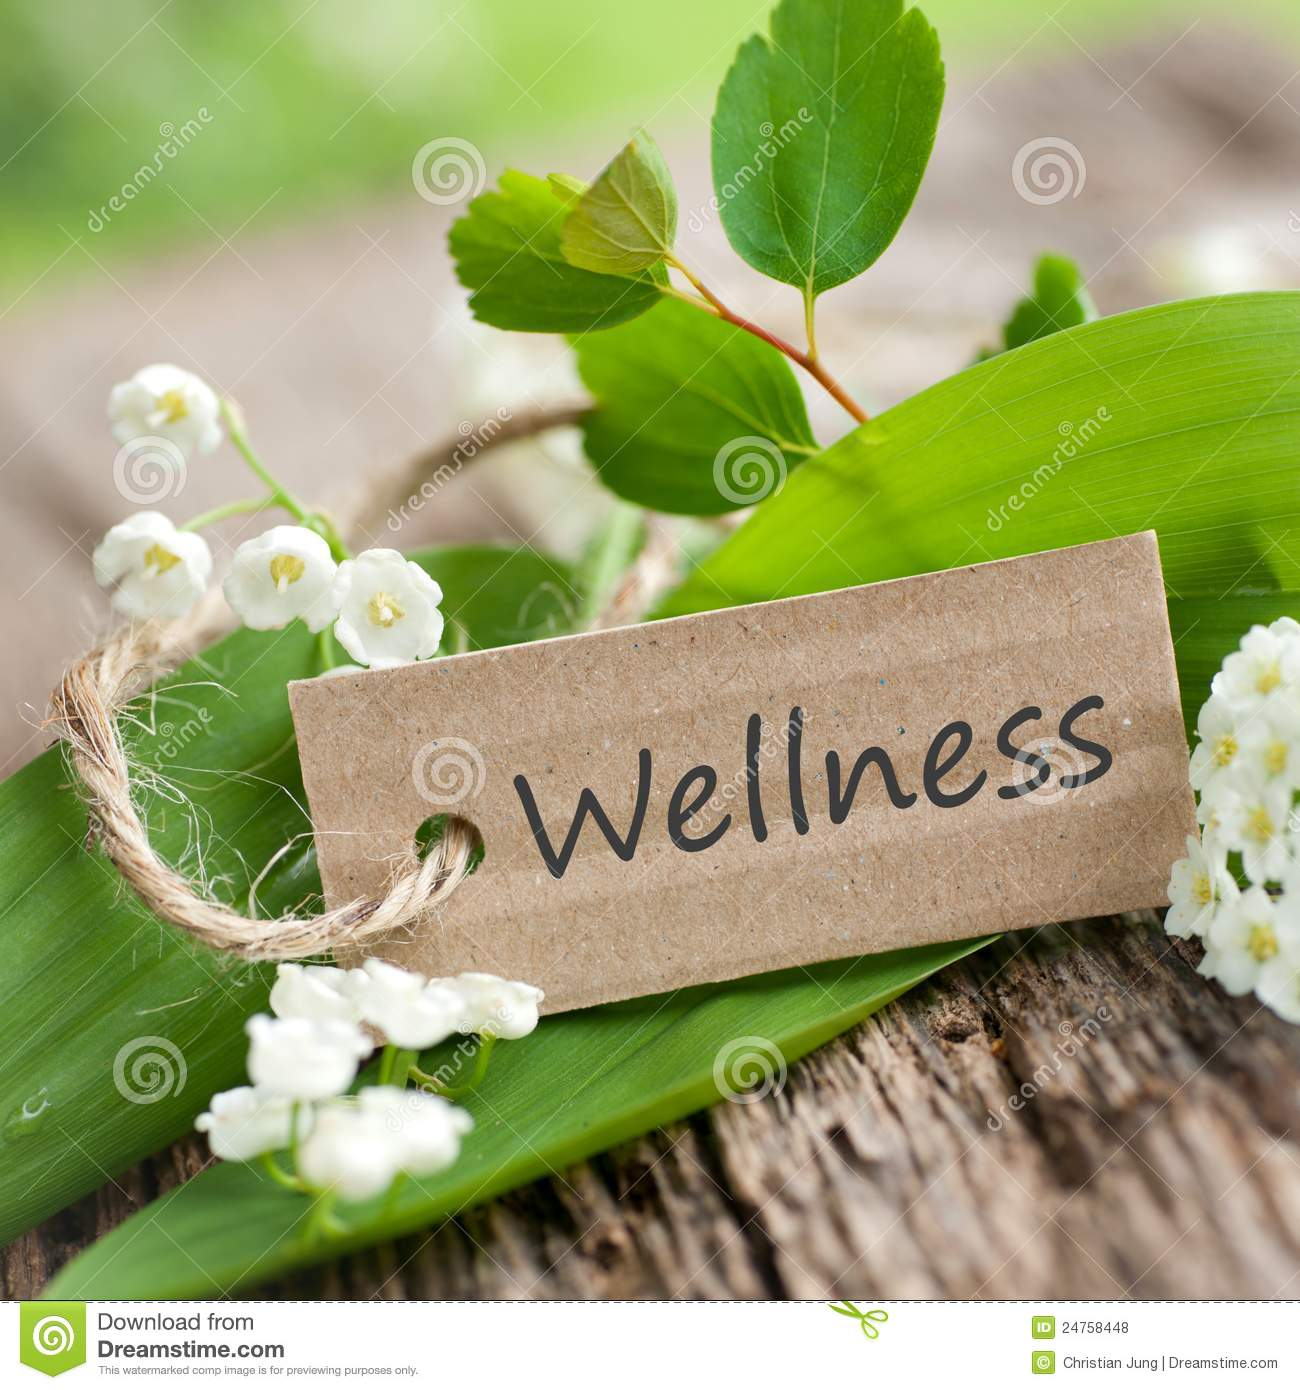 Wellness Royalty Free Stock Photos - Image: 24758448: https://www.dreamstime.com/royalty-free-stock-photos-wellness...